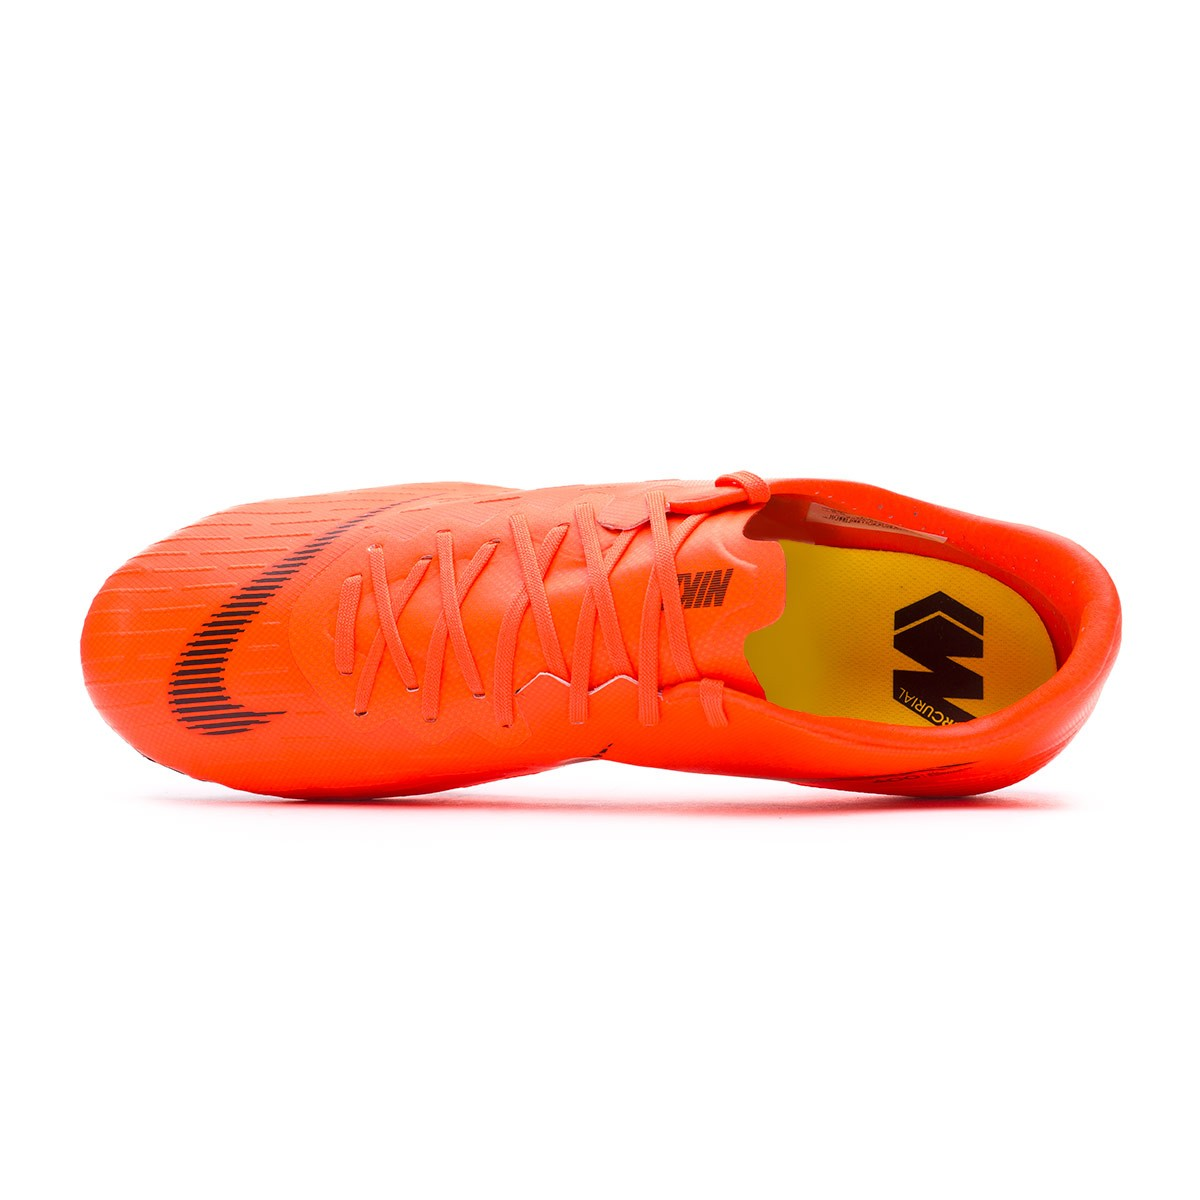 buy online 85017 8444e Football Boots Nike Mercurial Vapor XII Pro FG Total orange-Black-Volt -  Football store Fútbol Emotion